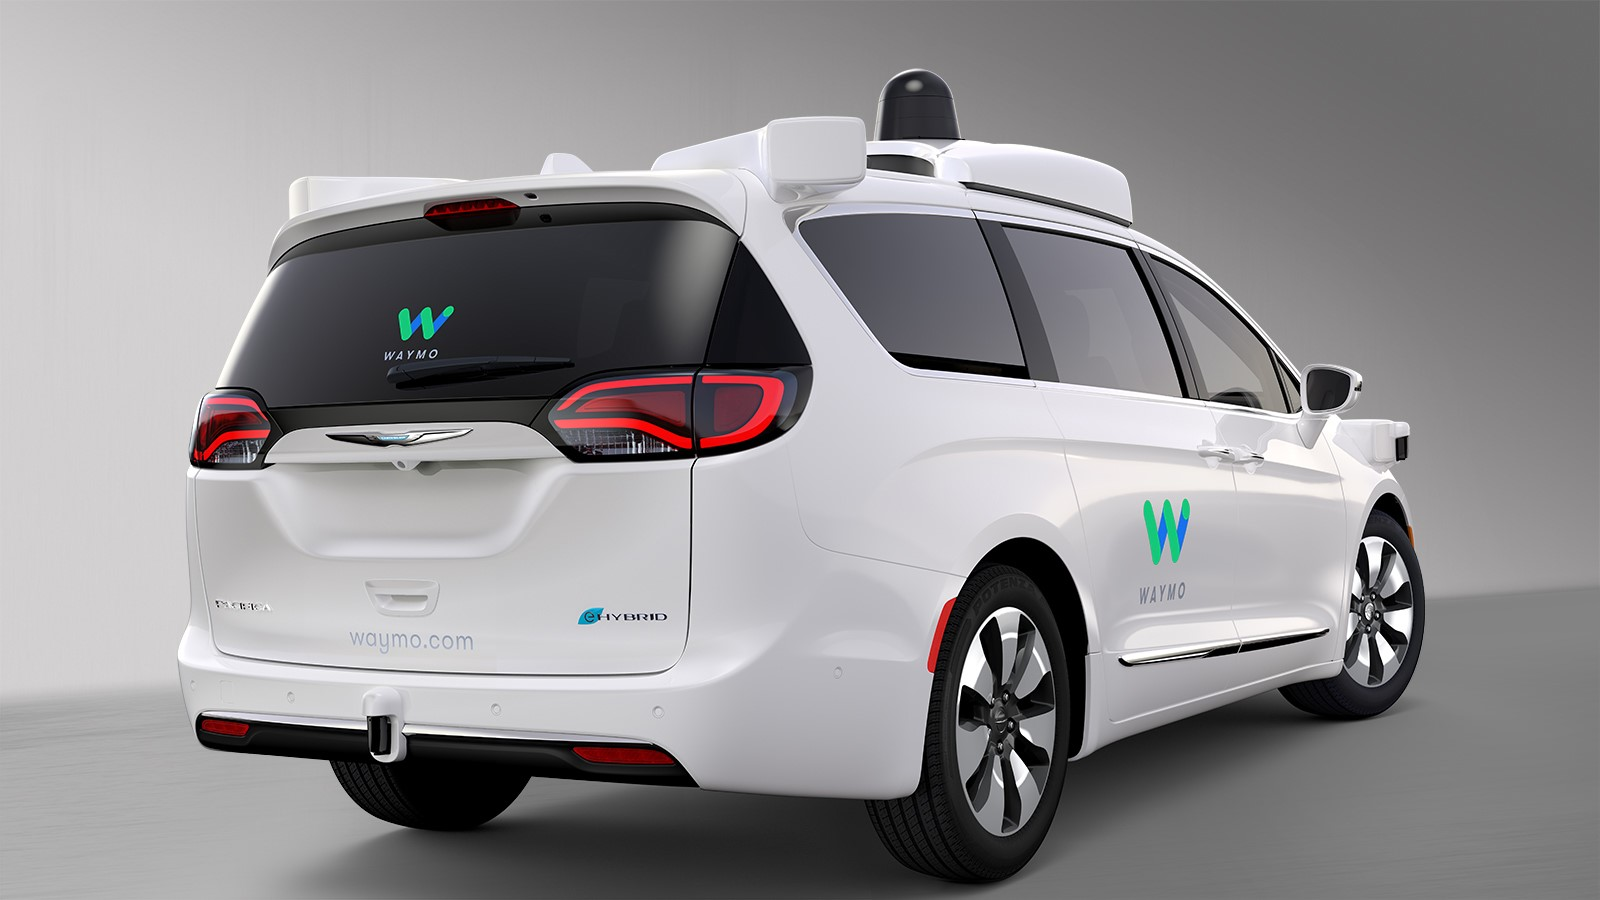 Chrysler Pacifica Hybrid Google Waymo (4)